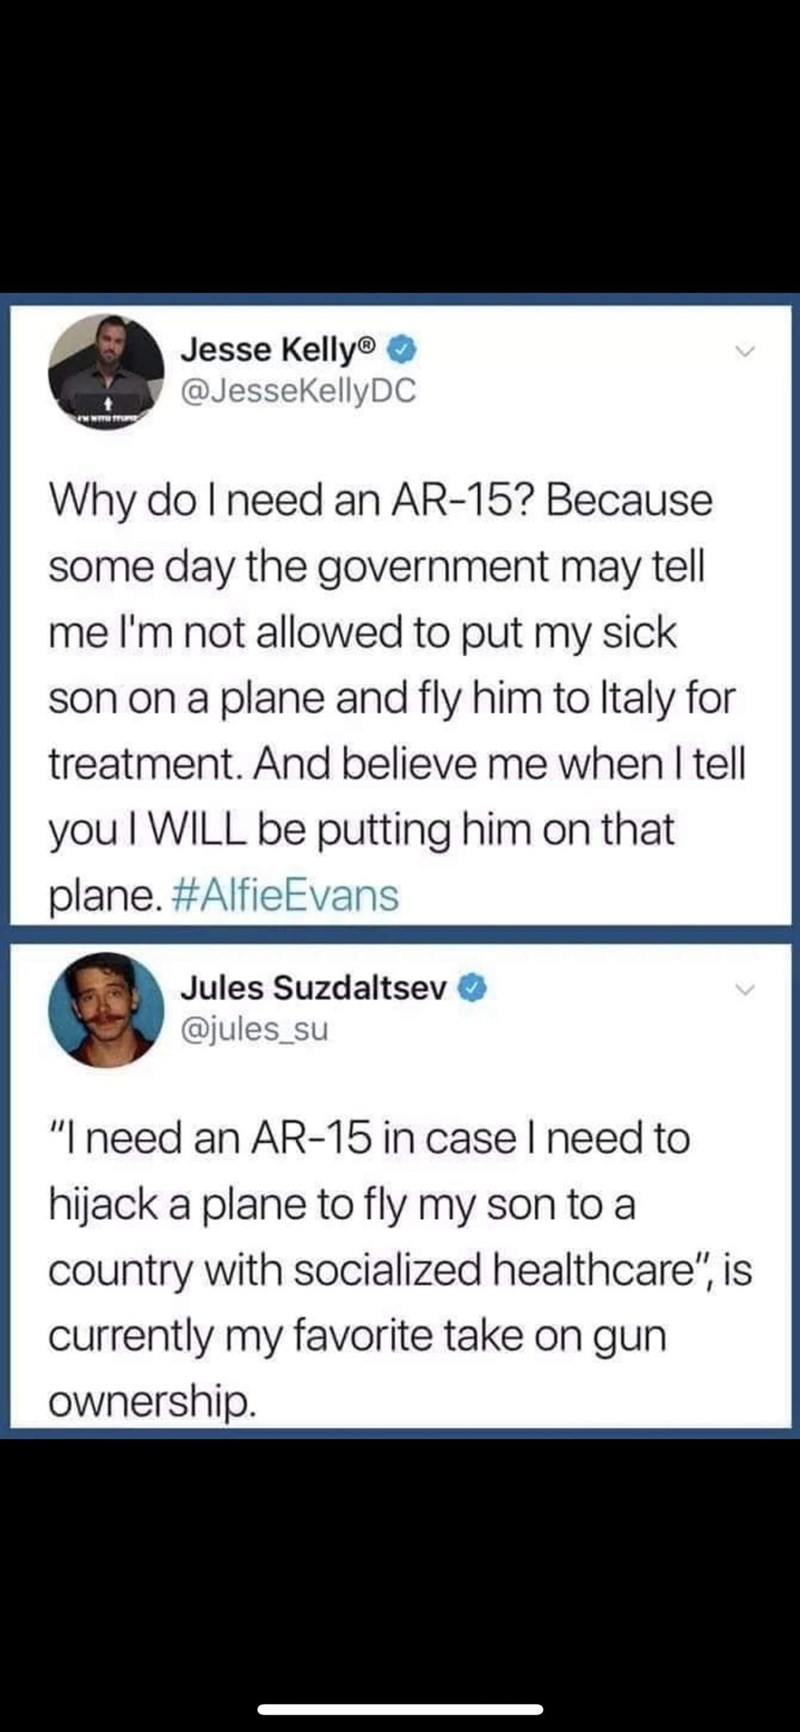 """Text - Jesse Kelly® @JesseKellyDC Why do I need an AR-15? Because some day the government may tell me I'm not allowed to put my sick son on a plane and fly him to Italy for treatment. And believe me when I tell you I WILL be putting him on that plane. #AlfieEvans Jules Suzdaltsev @jules_su """"I need an AR-15 in case I need to hijack a plane to fly my son to a country with socialized healthcare"""", is currently my favorite take on gun ownership"""